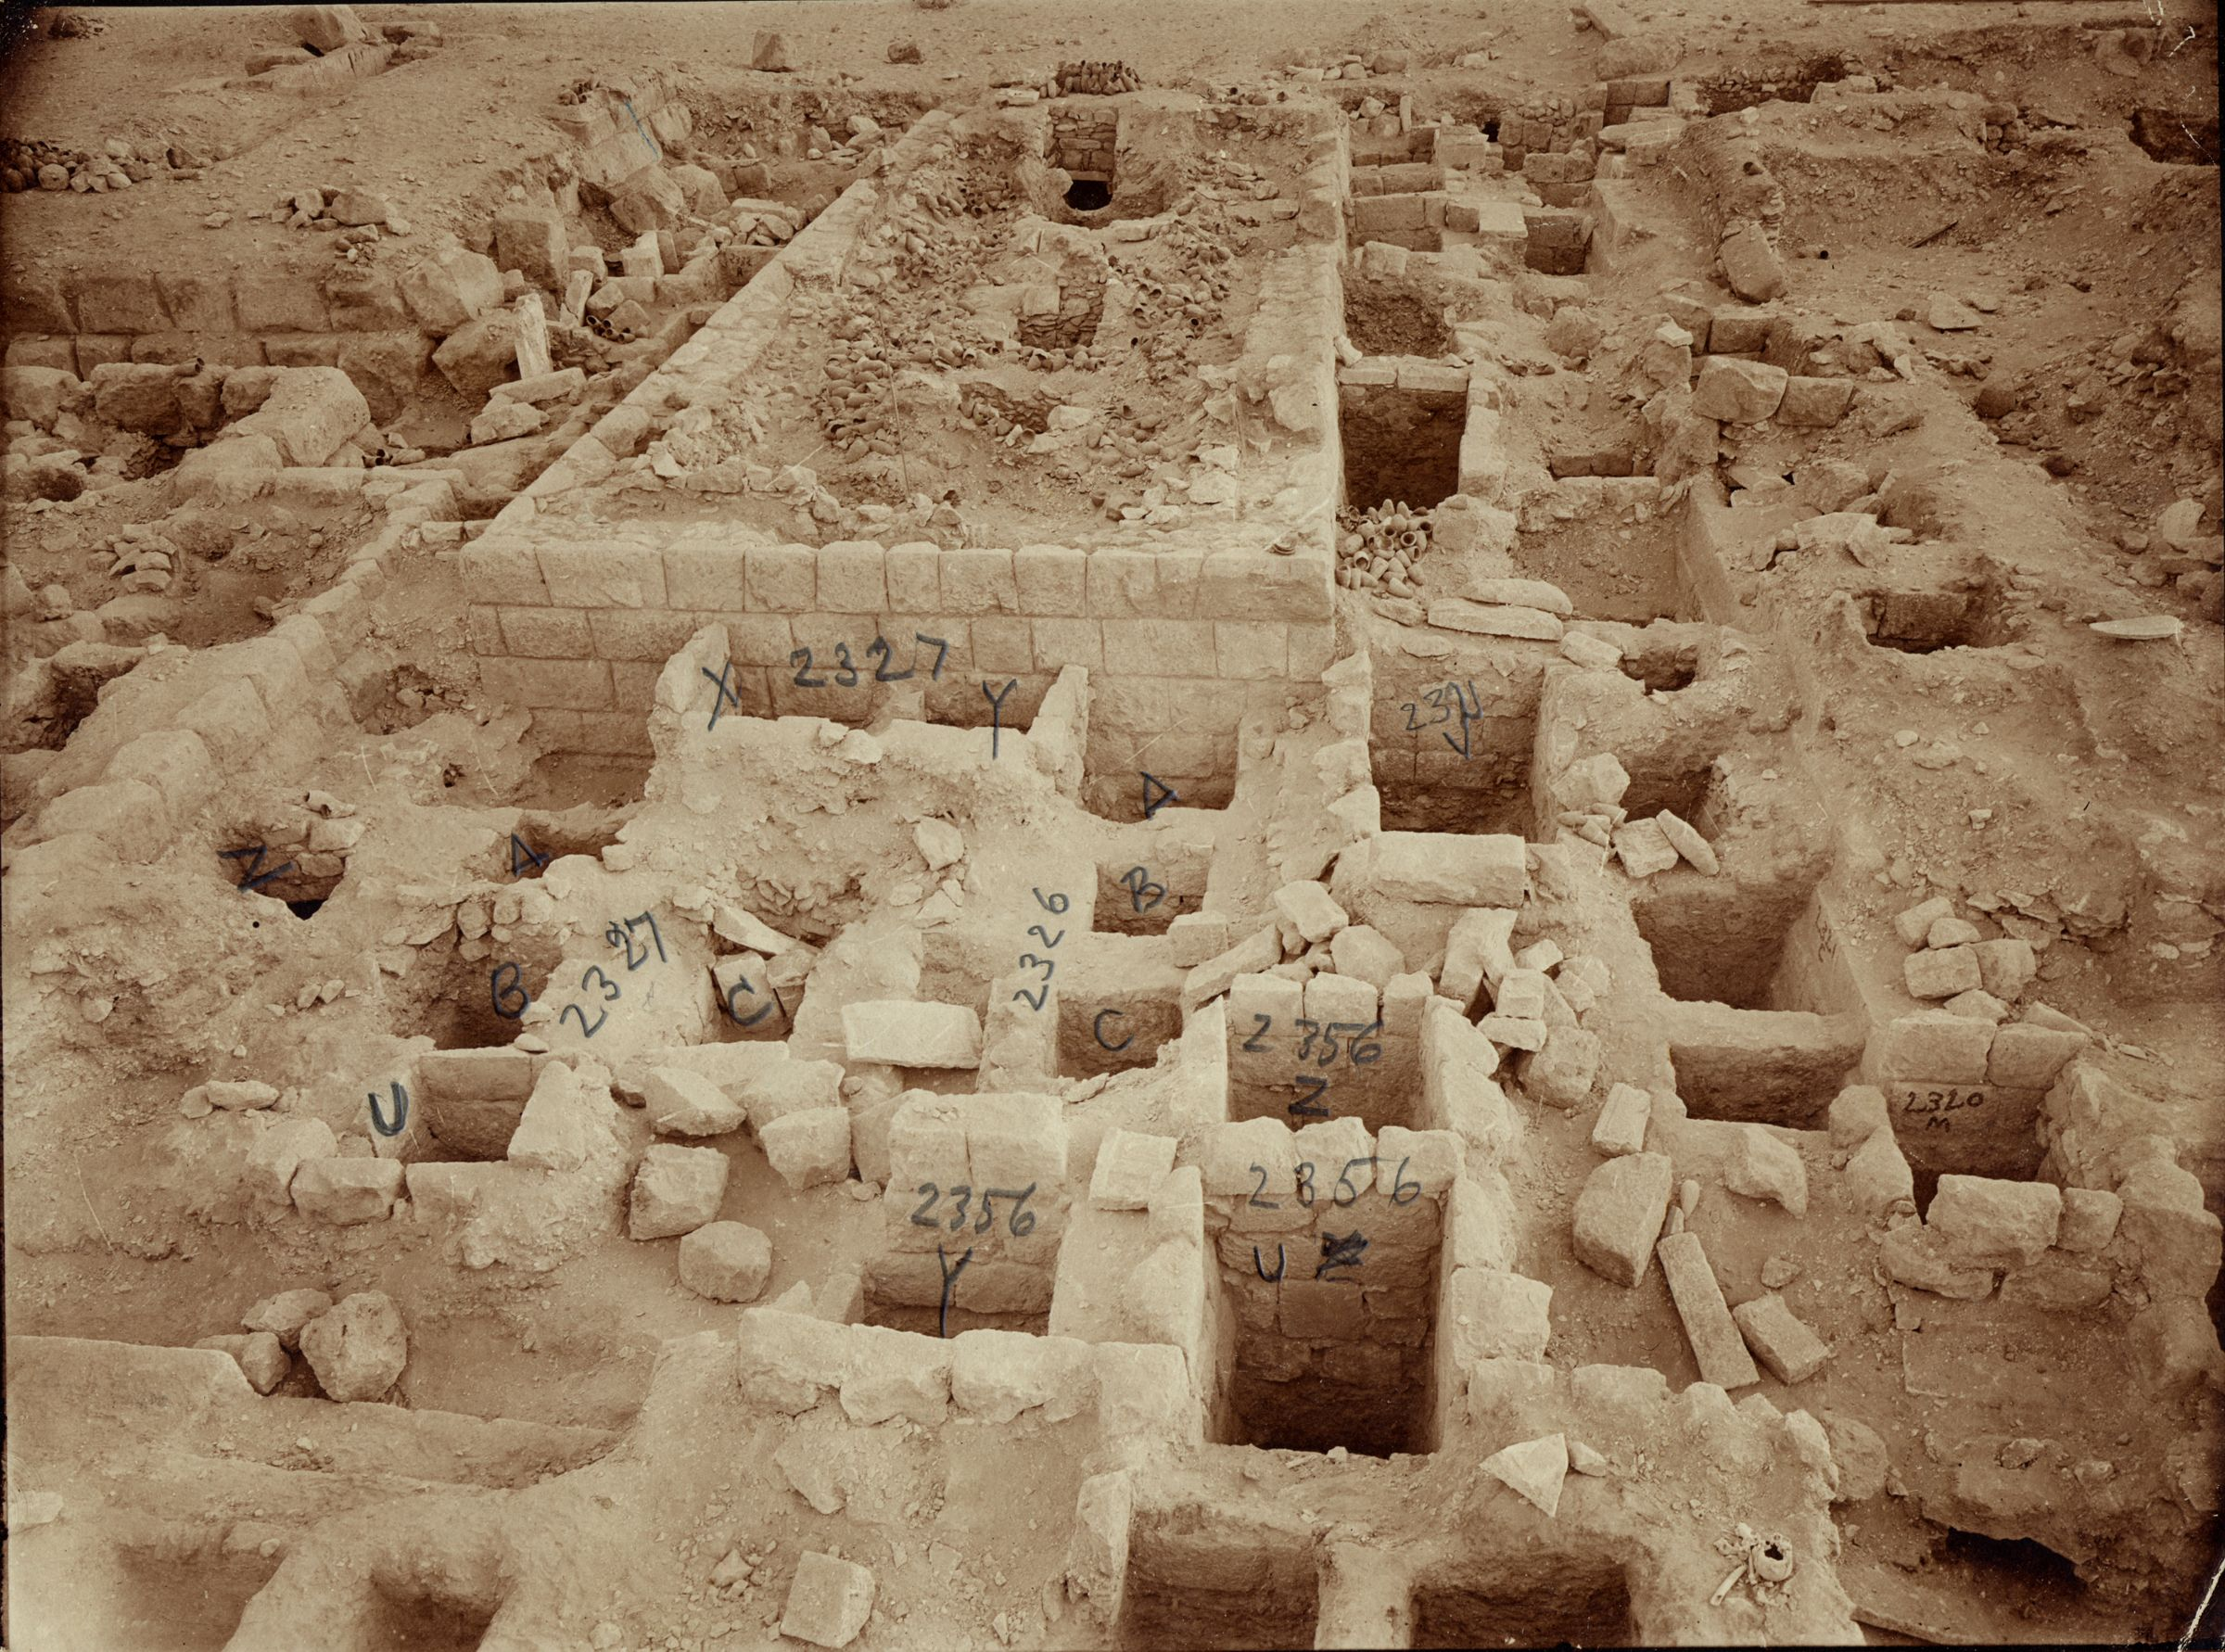 Western Cemetery: Site: Giza; View: G 2330 = G 5380, G 2356, G 2327, G 2326, G 2321, G 2320 = G 5280